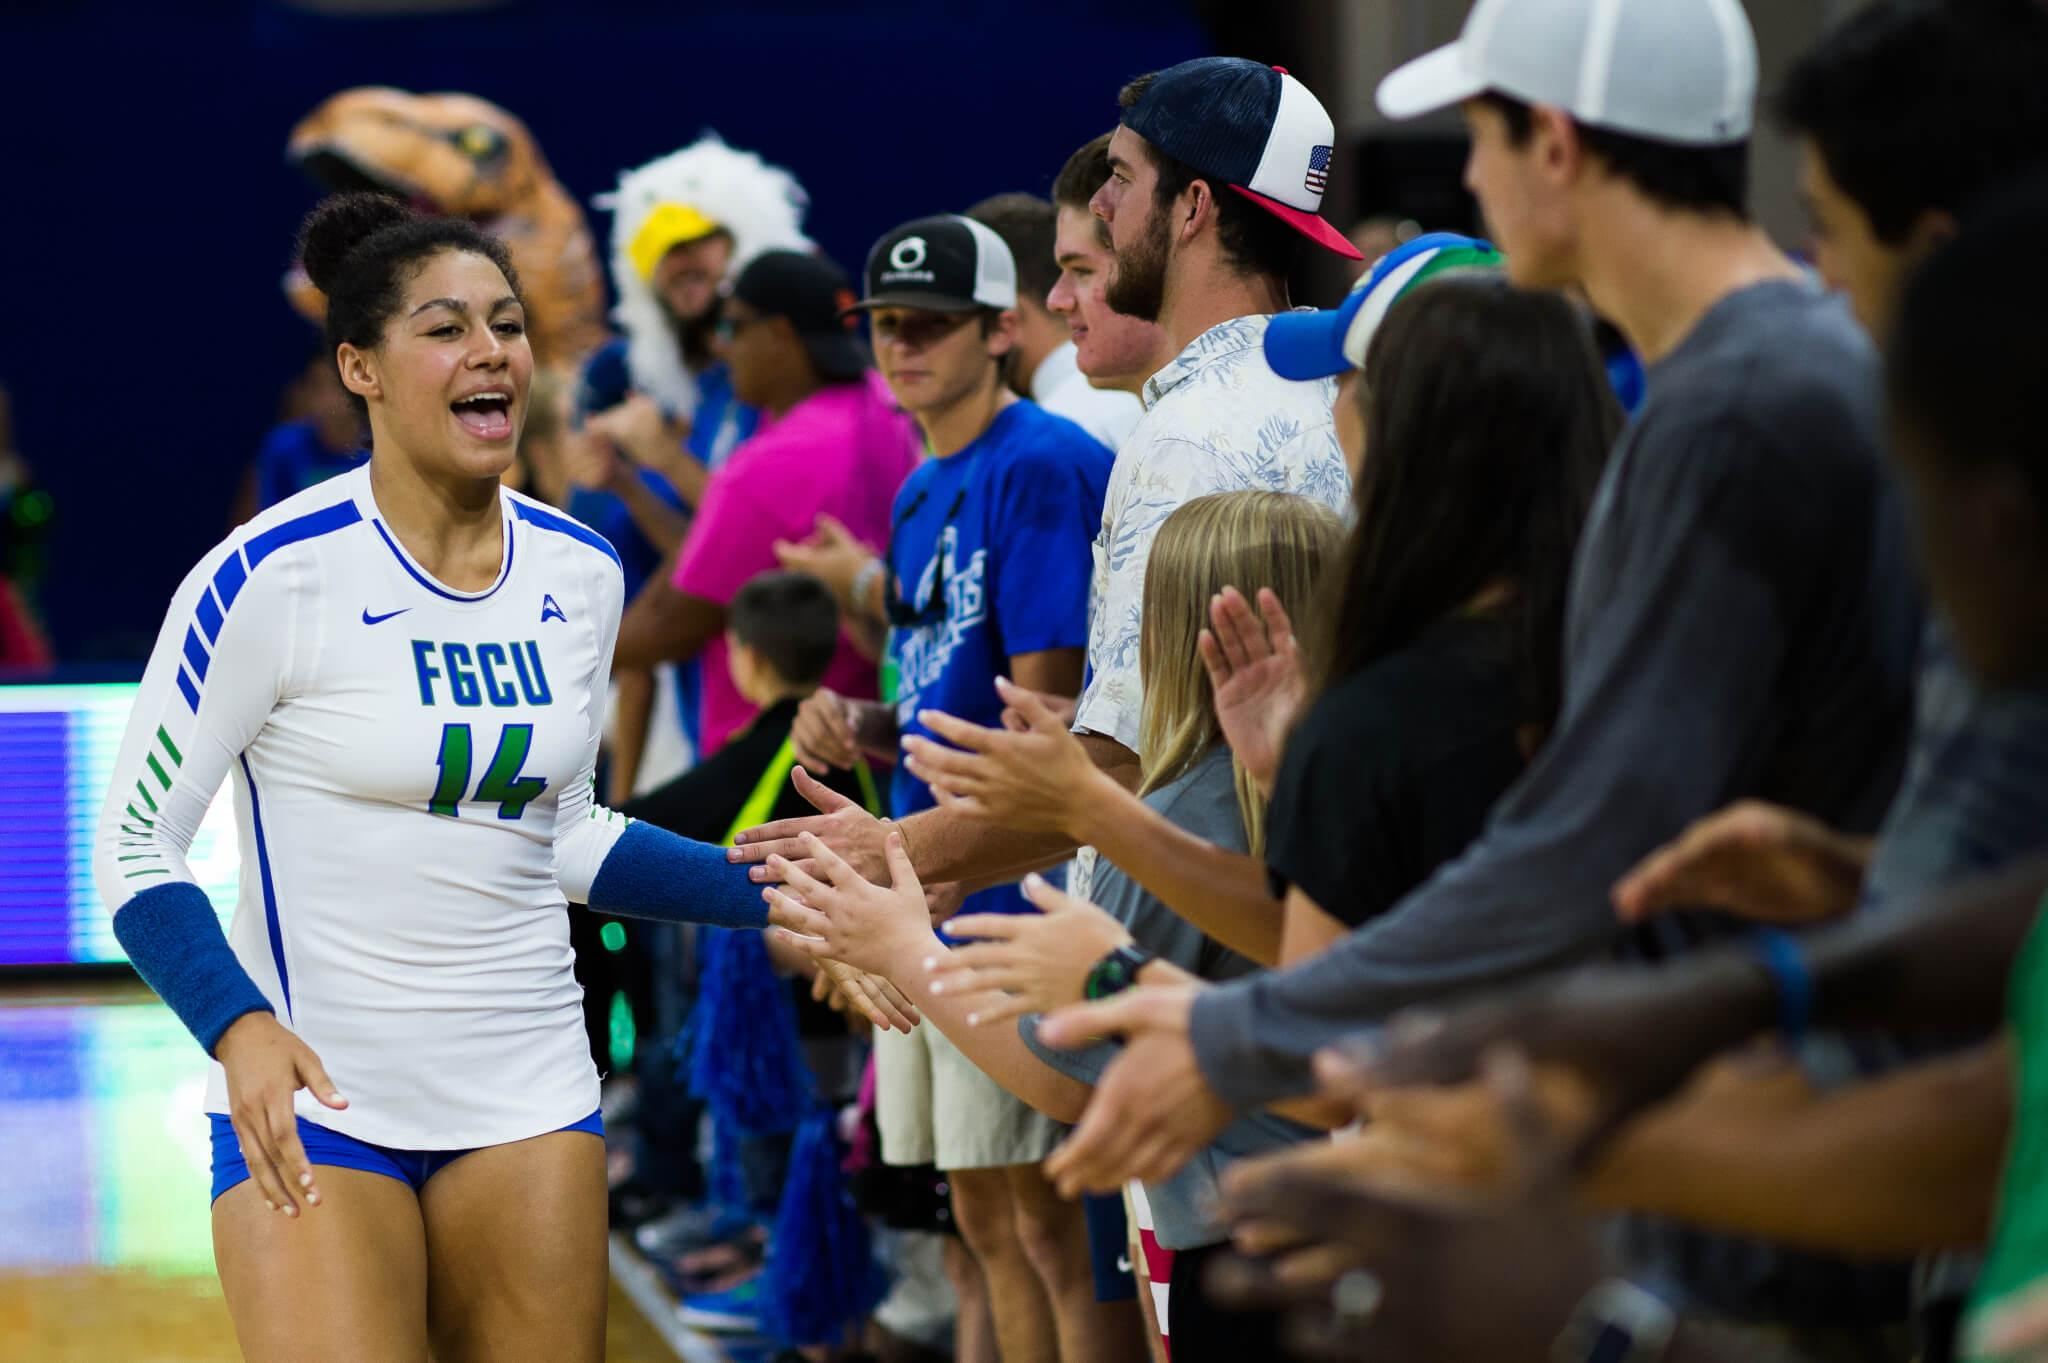 FGCU volleyball extends win streak to 11 with 3-1 victory over FIU